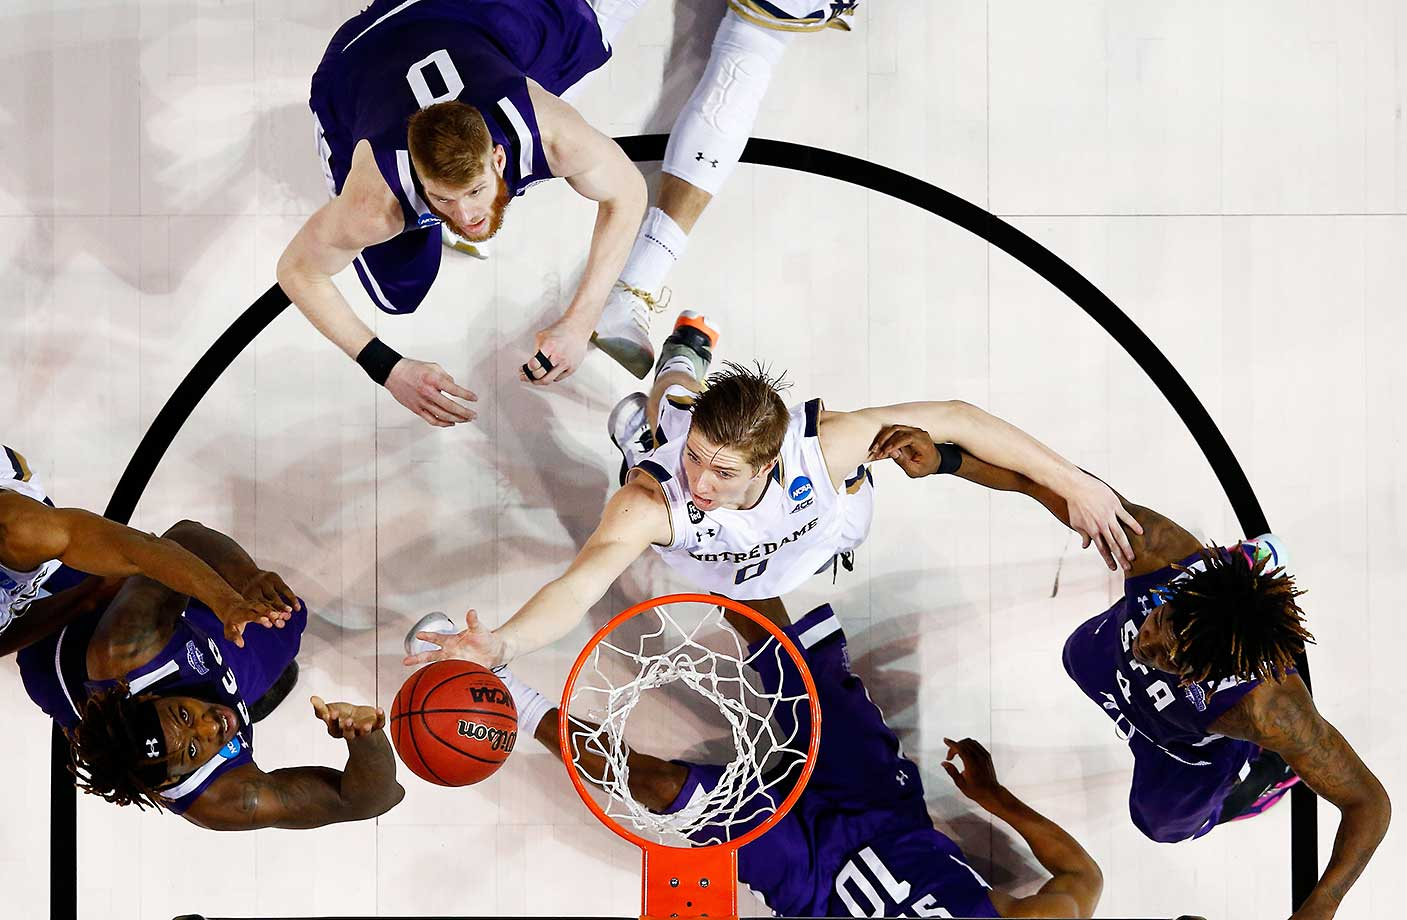 Rex Pflueger of Notre Dame tips in a shot with 1.5 seconds remaining to defeat Stephen F. Austin 76-75.